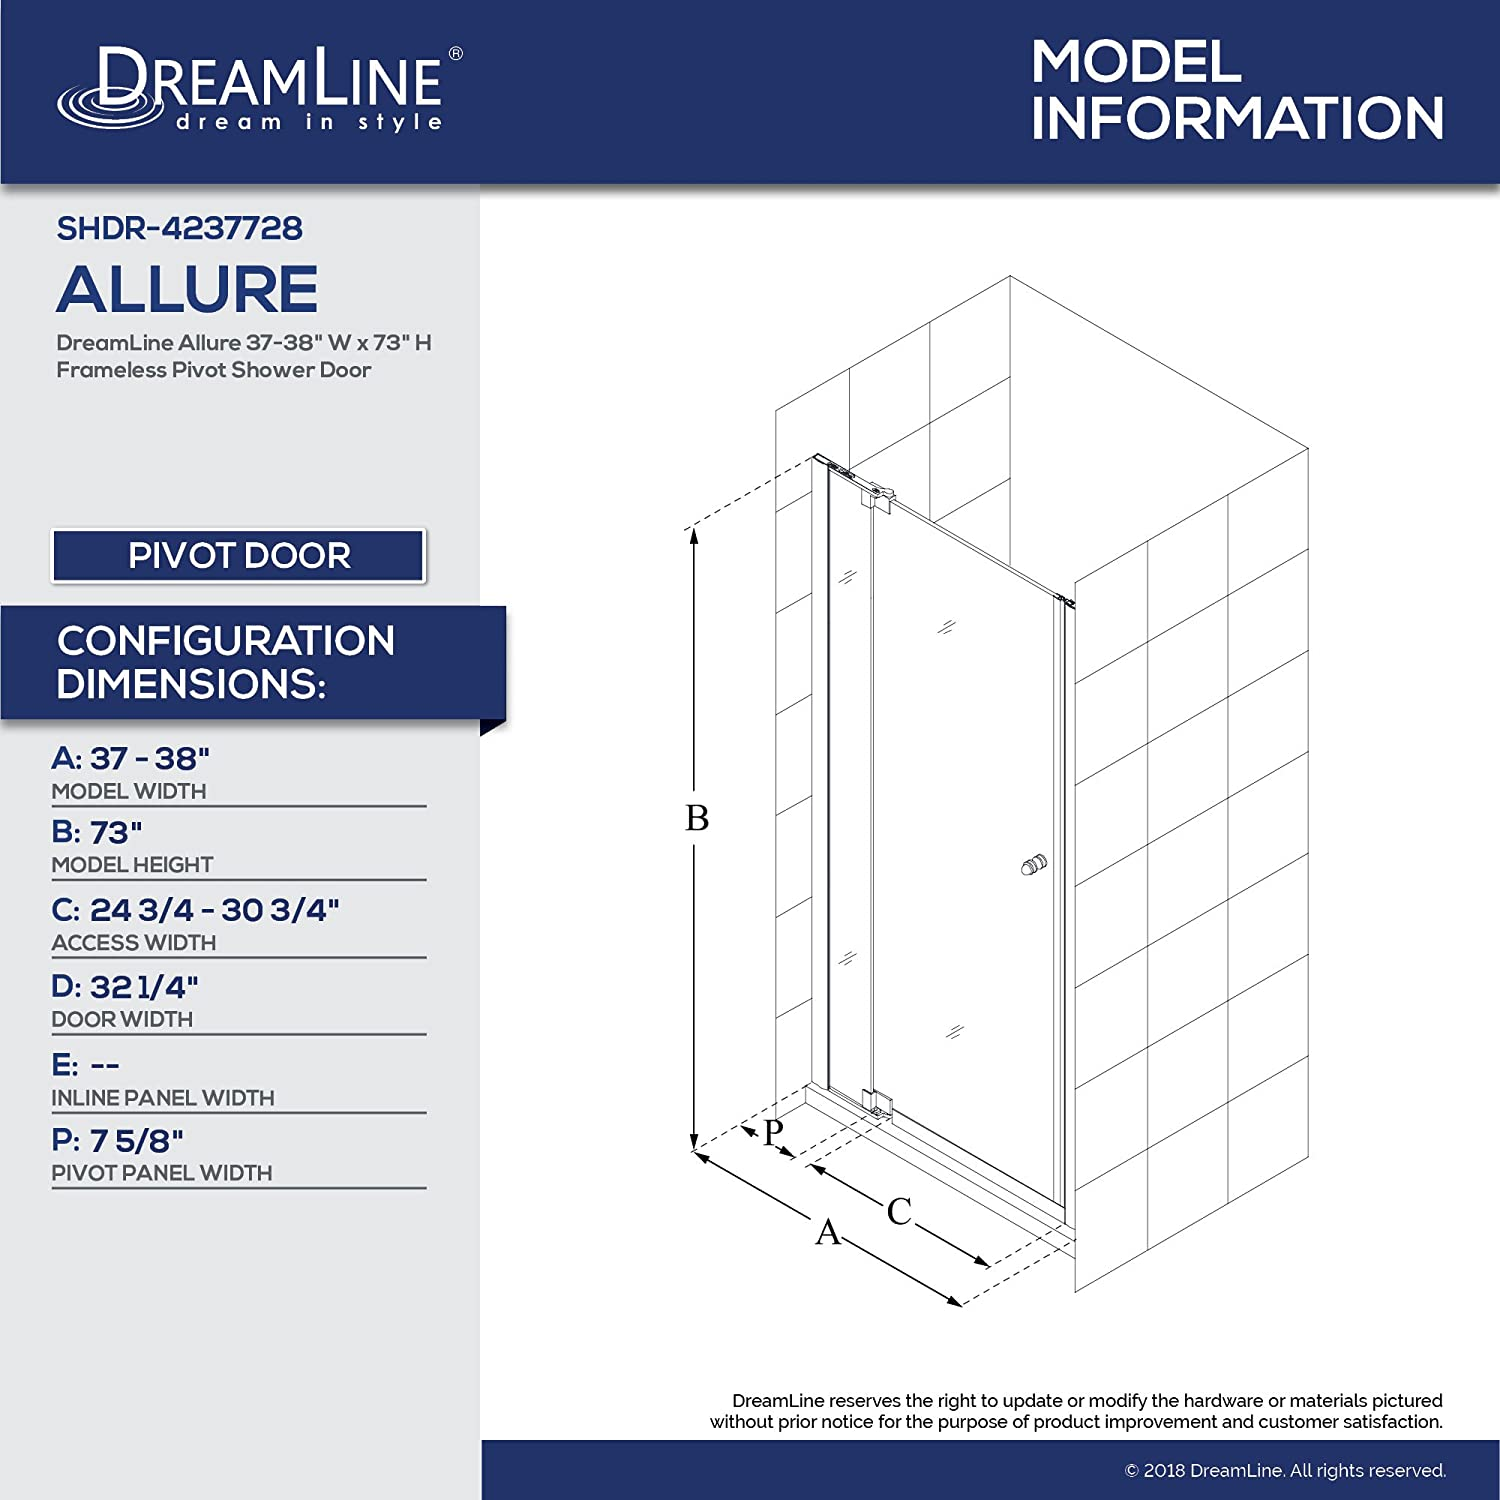 DreamLine Allure 37-38 in. Width, Frameless Pivot Shower Door, 3 8 Glass, Chrome Finish